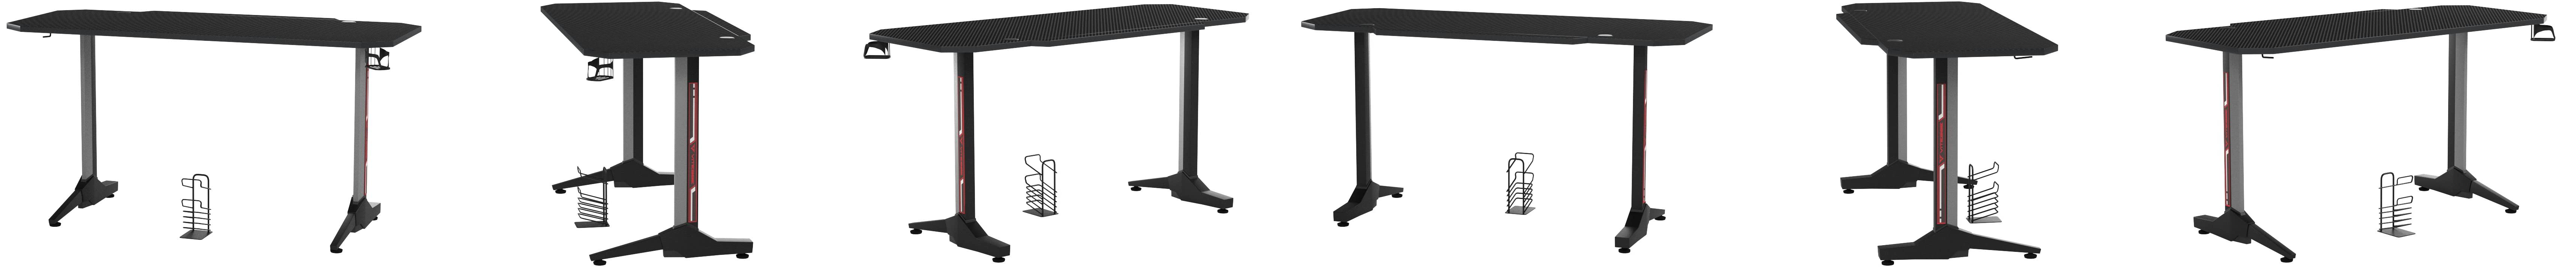 Vitesse 55 Inch Gaming Desk Racing Style Computer Desk With Free Mouse Pad T Shaped Professional Gamer Game Station With Usb Gaming Handle Rack Cup Holder Headphone Hook Black Amazon Ca Home